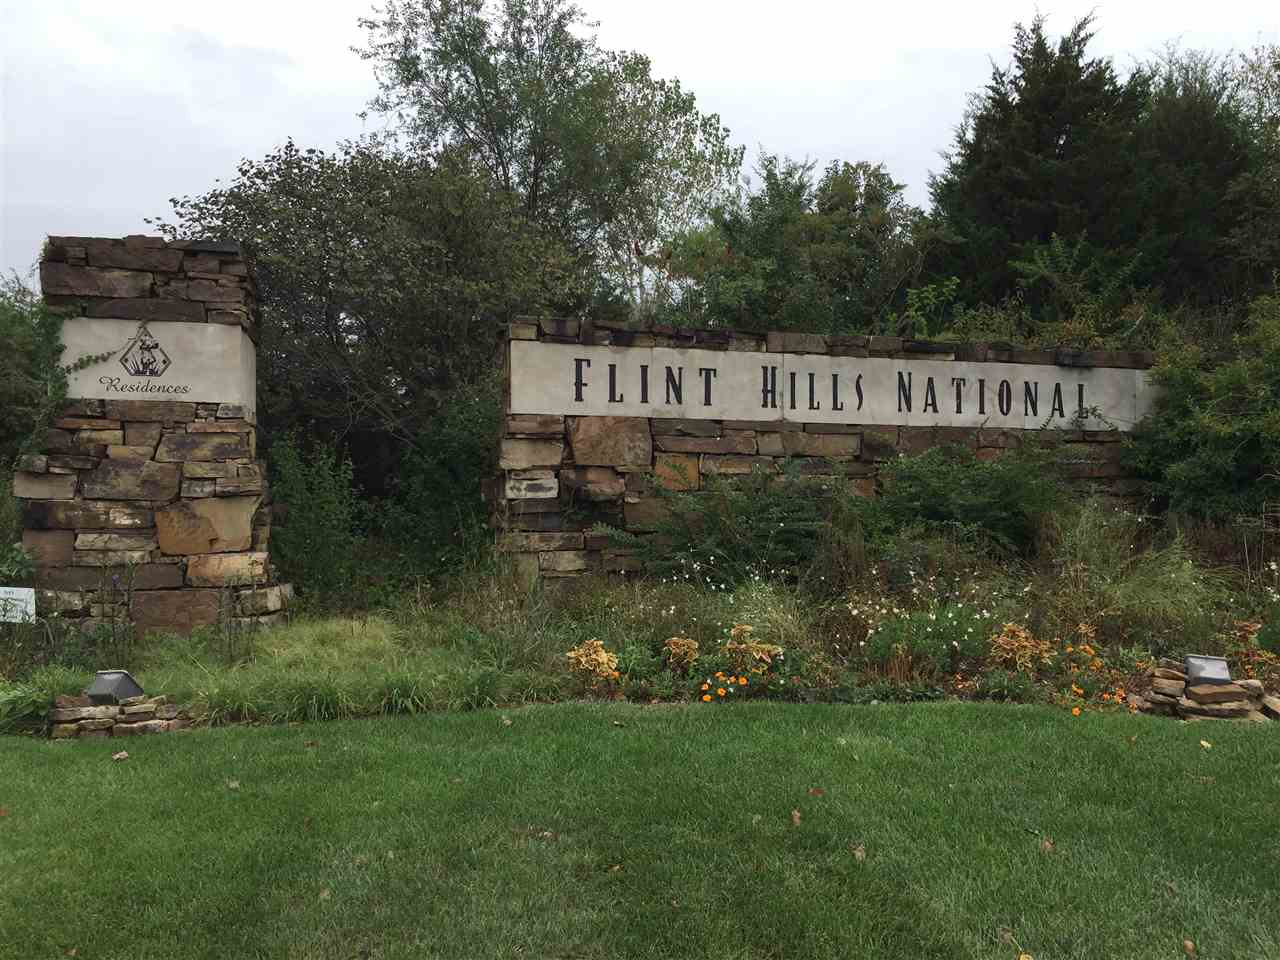 1.7 acre wooded home site in the prestigious Flint Hills National Residences development which surrounds the nationally ranked Flint Hills National Golf Club. Spacious lot backing to commons area. Minimum main floor square footage is 2,500 SF.  Great lot with very low specials.